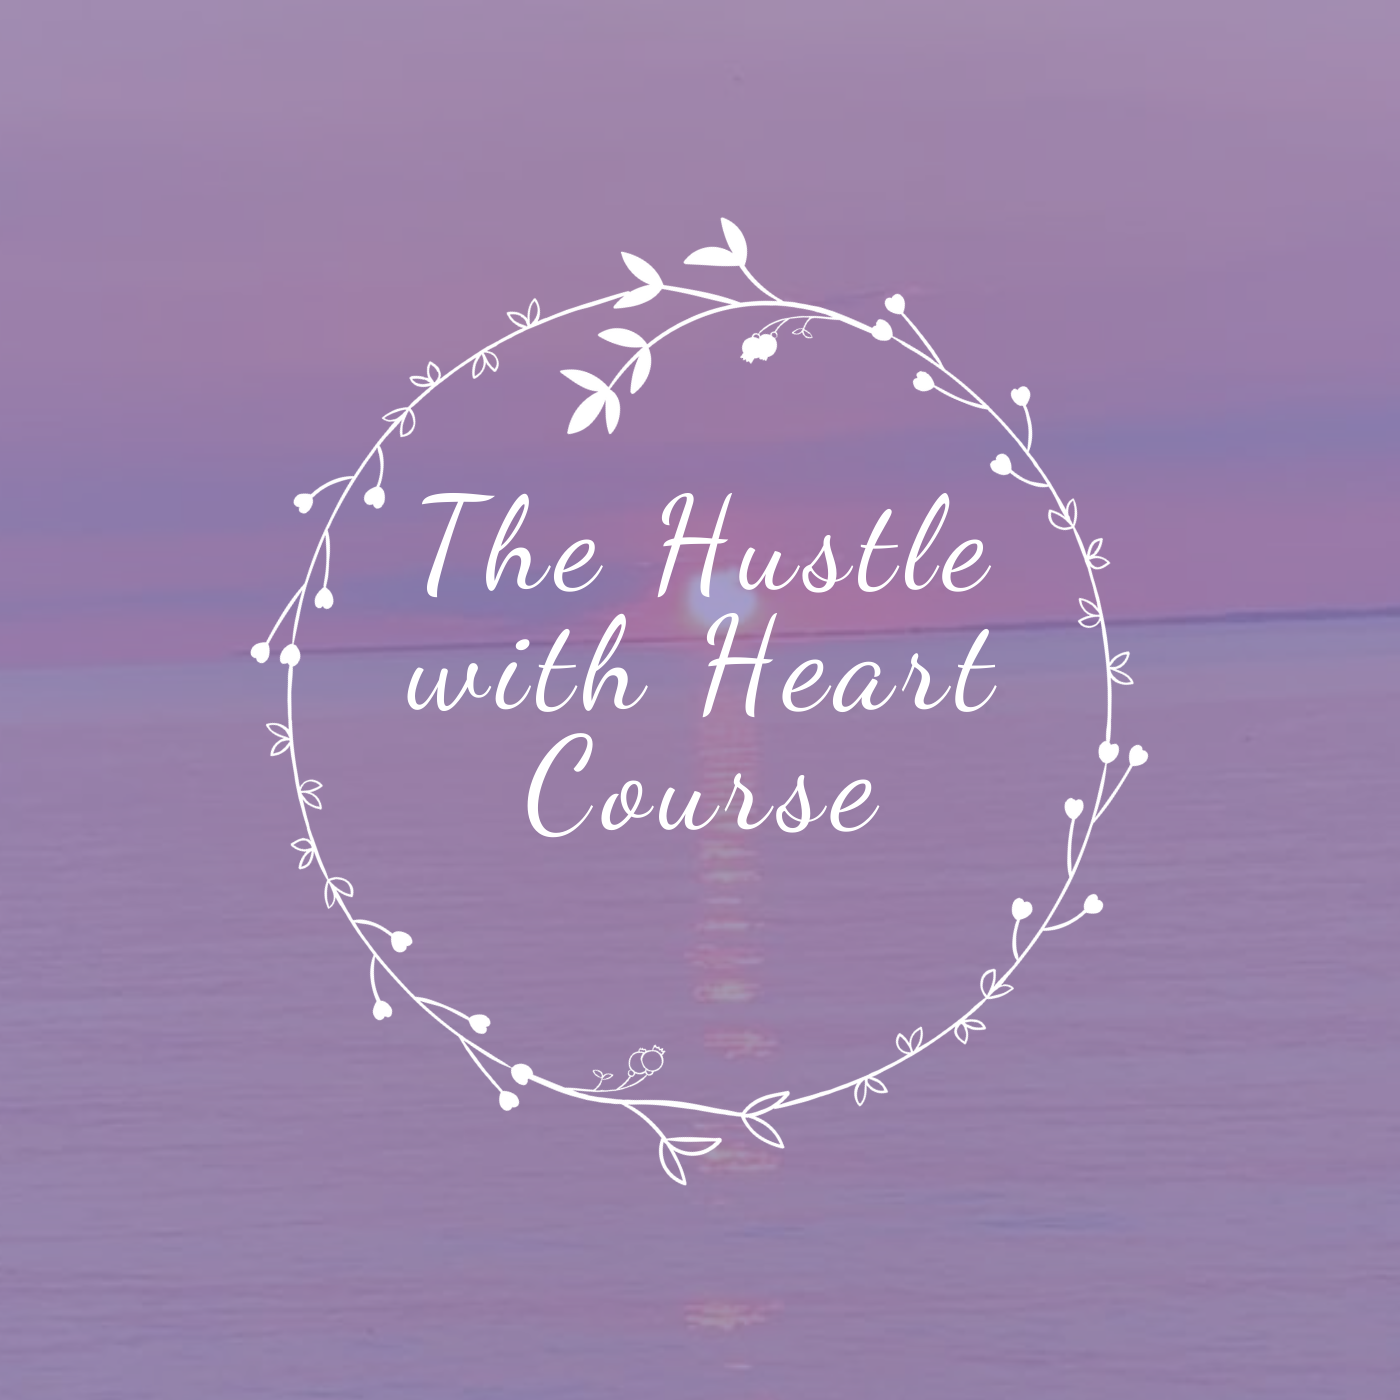 The Hustle with Heart Course